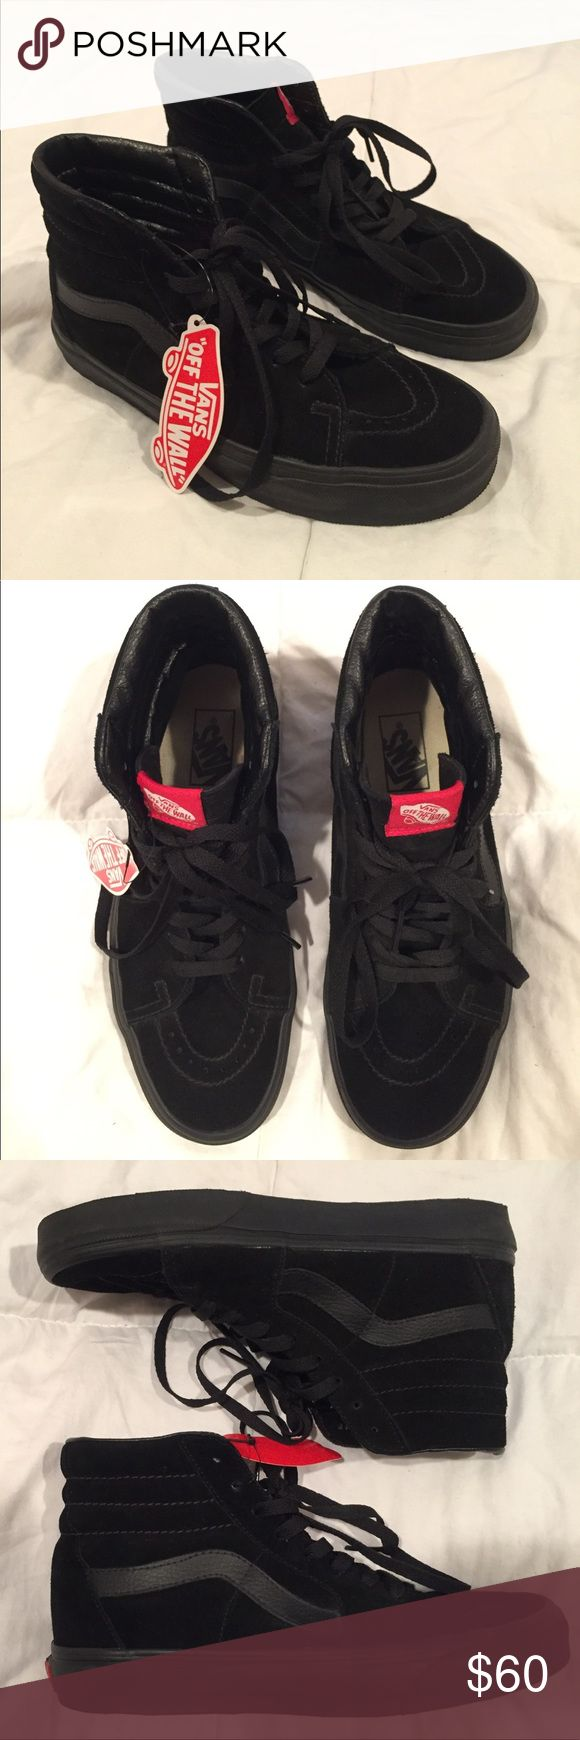 Vans Black Suede Sk8-Hi Sneakers Worn very lightly, women's size 9, original laces. Suede material with leather accents. All black. High top. Vans Shoes Sneakers